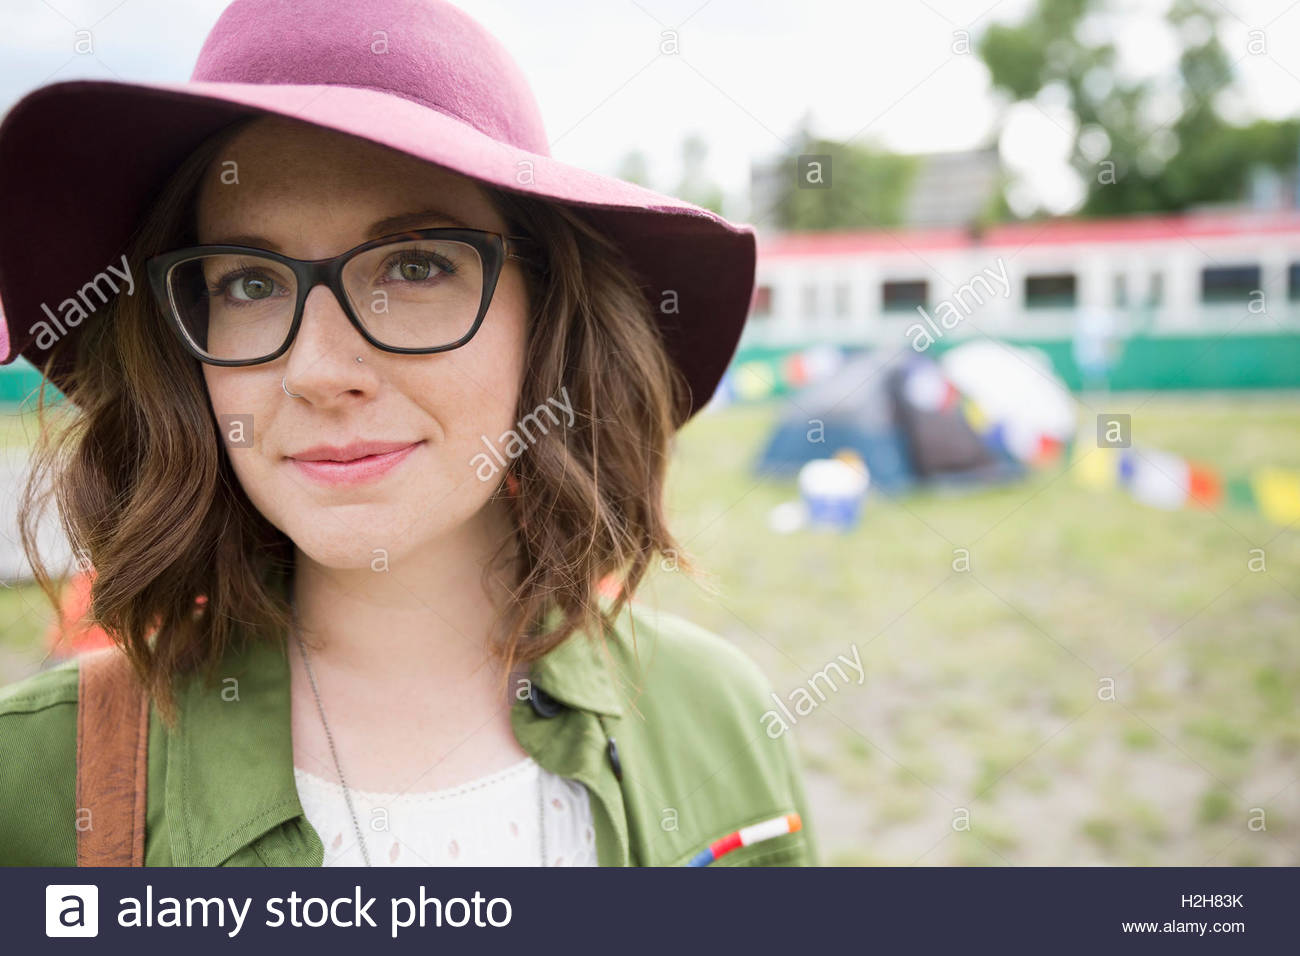 4cf110c27e Portrait smiling young brunette woman wearing floppy hat and eyeglasses at  summer music festival campsite -